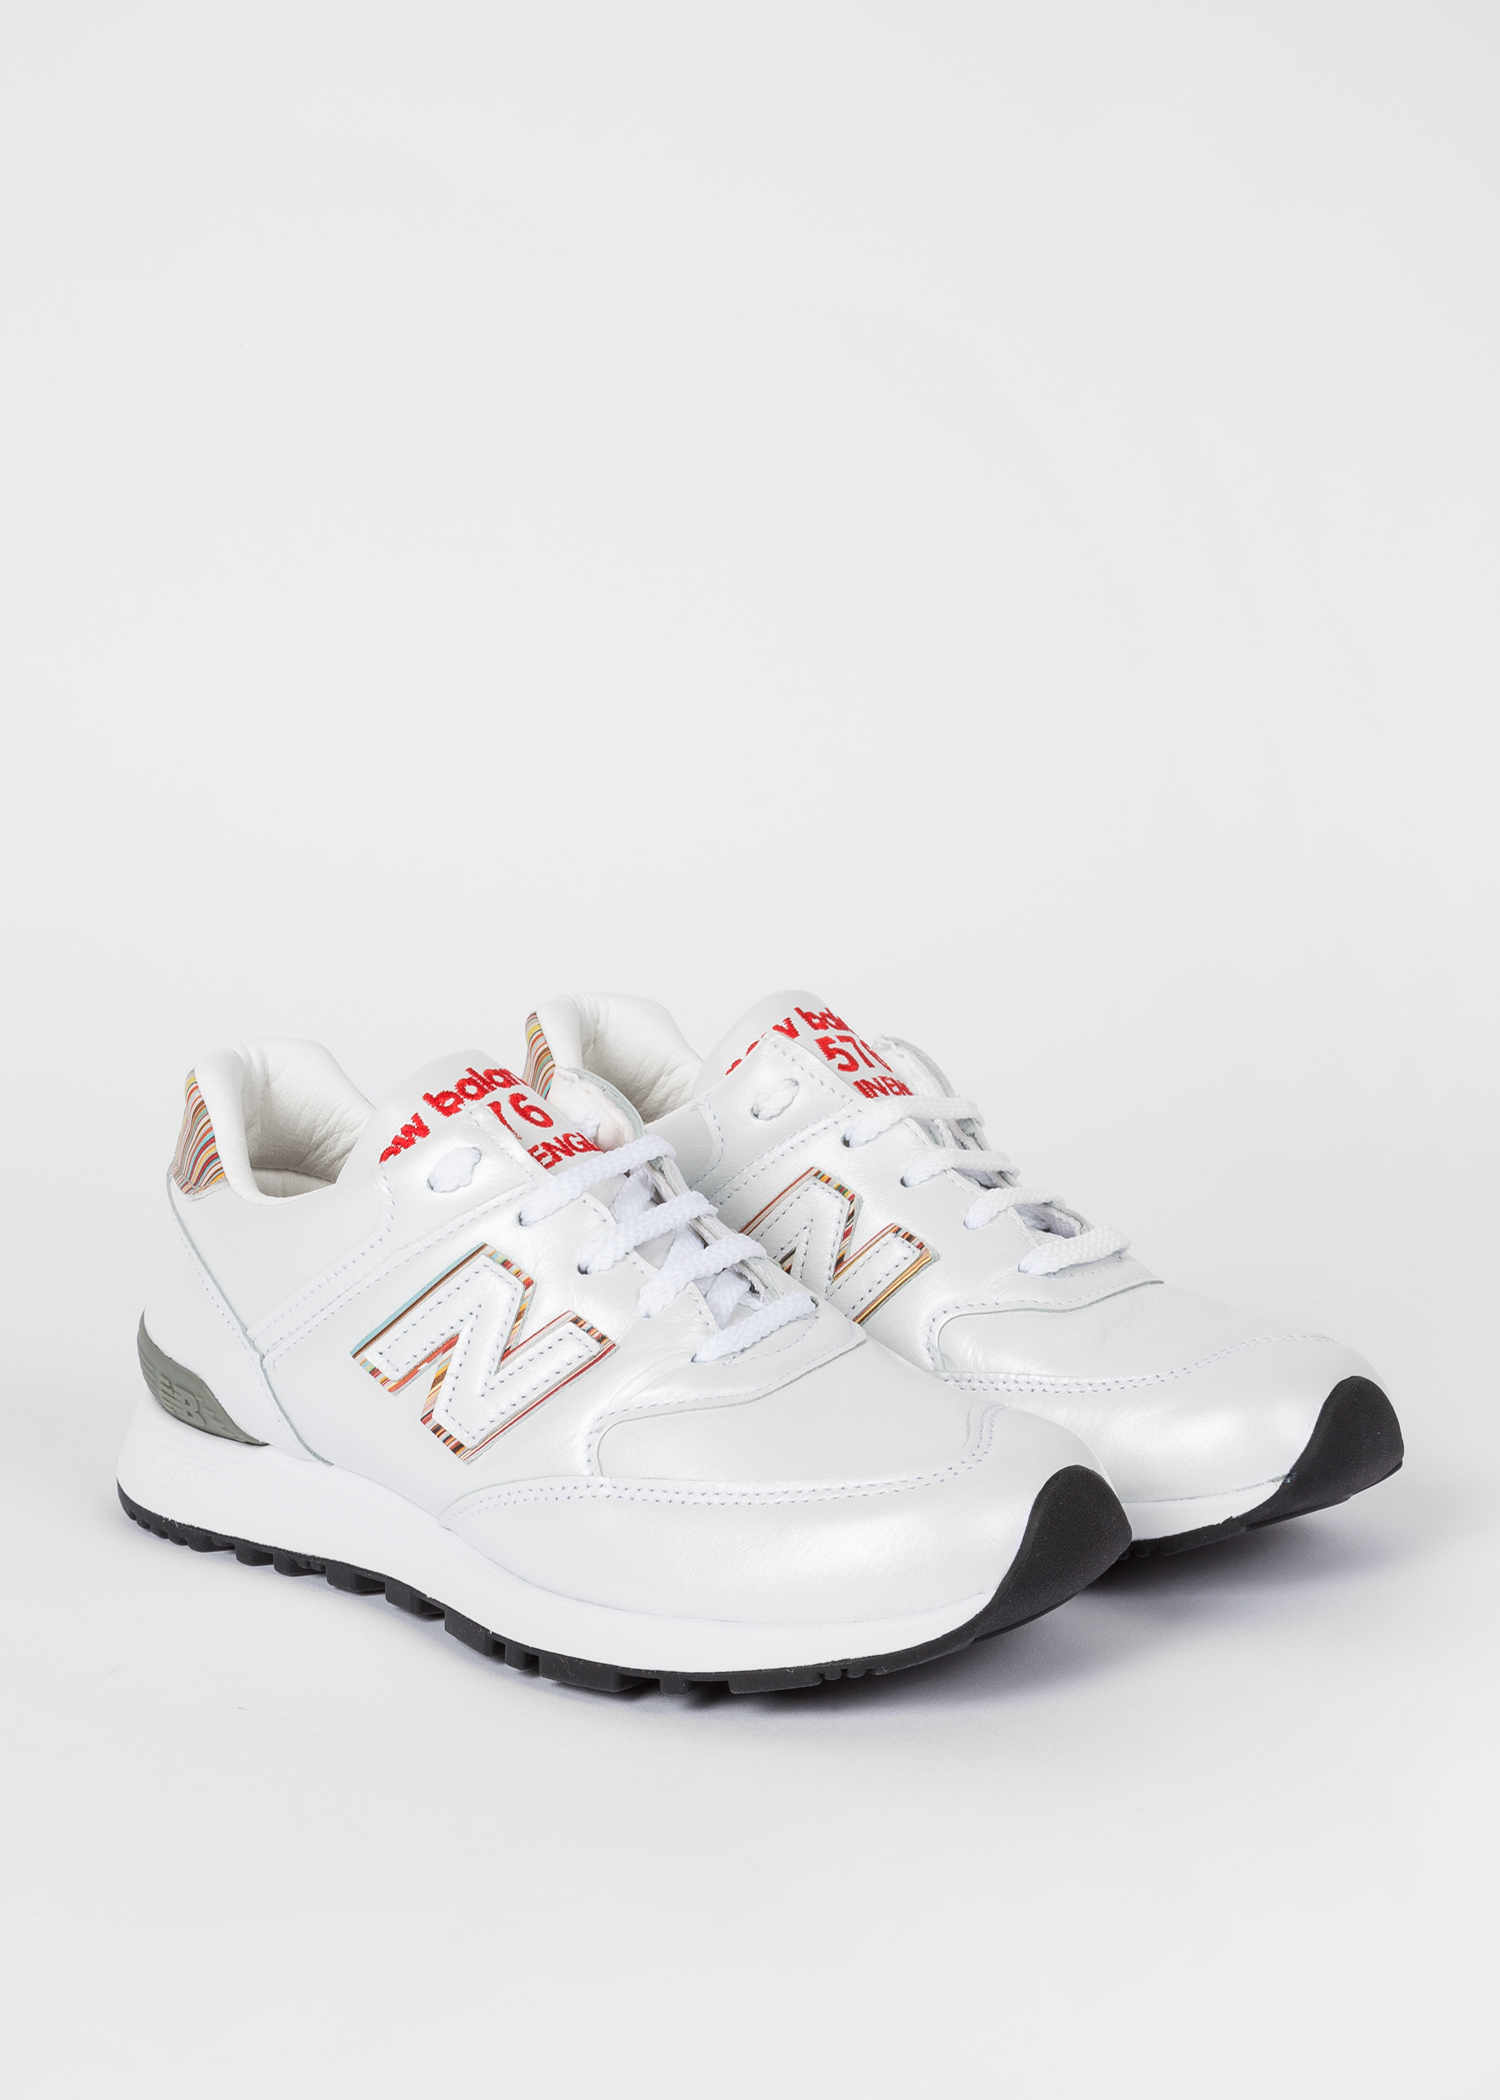 huge discount 1ebab fde6b 359a2 ac79e  norway new balance paul smith baskets 576 femme blanches en  cuir f535e ccc94